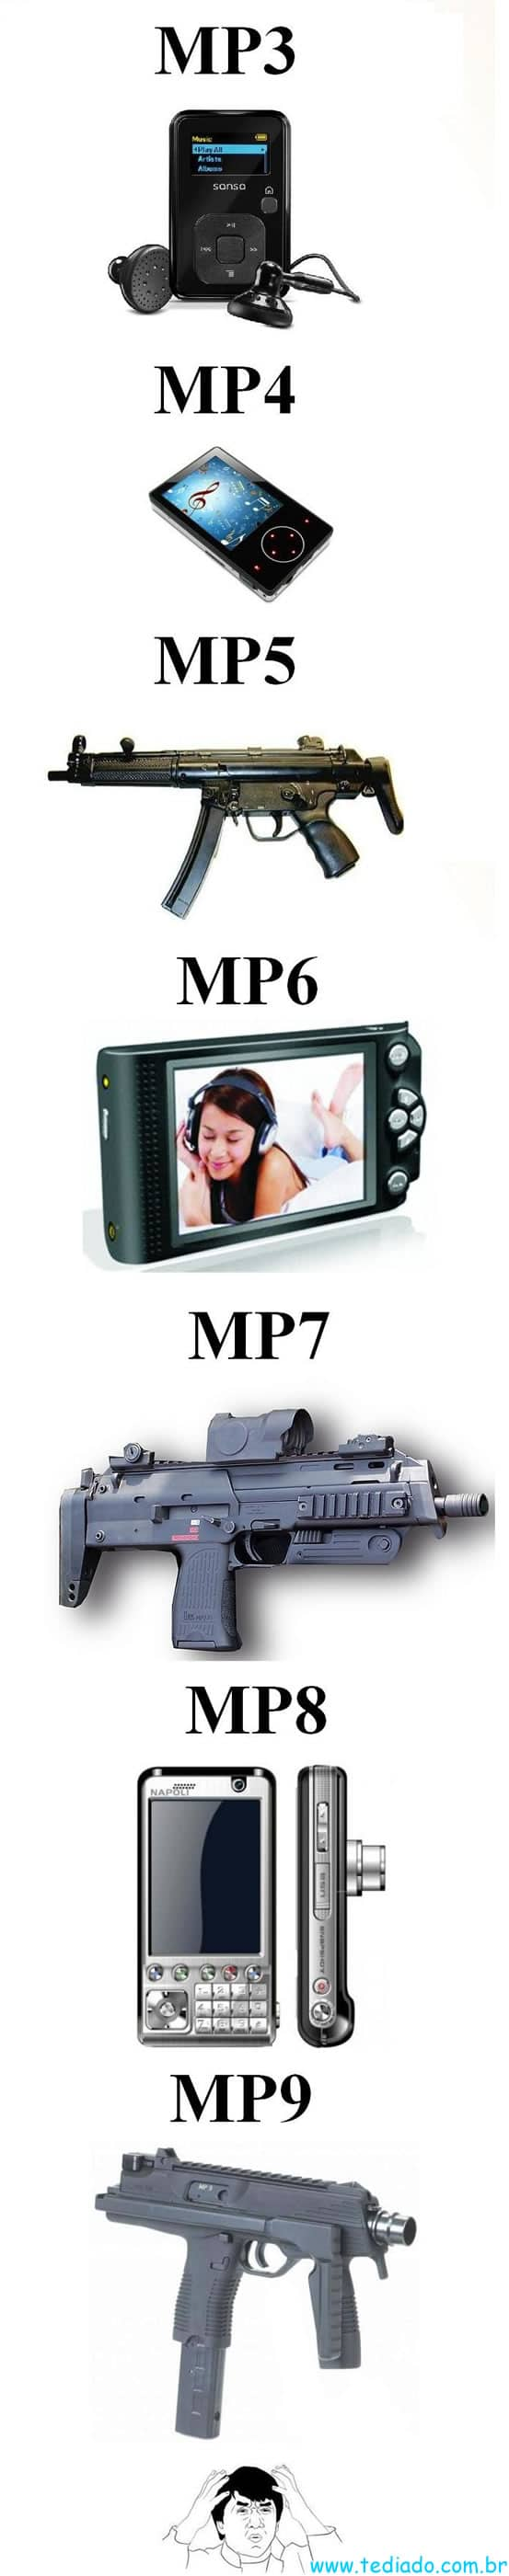 Evolução do MP